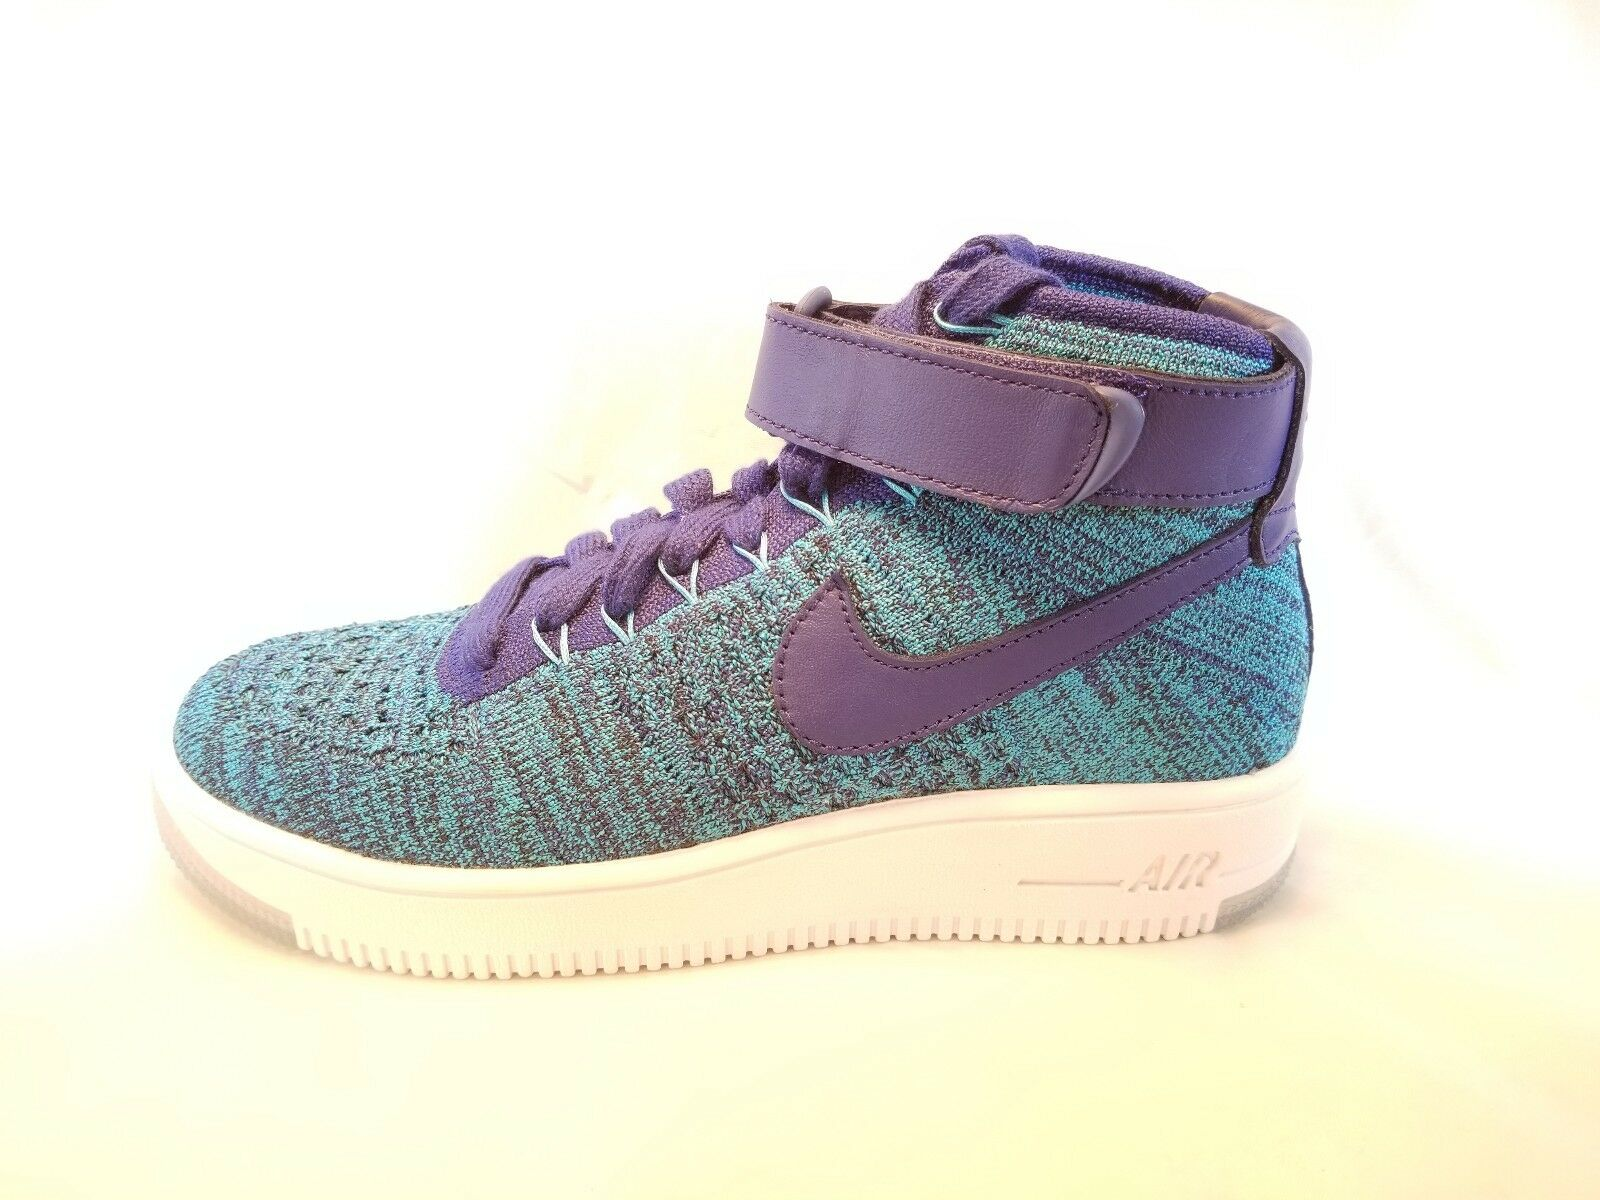 Women's Nike Air Air Air Force 1 Flynit, 818018 400, Size 6.5 f8bf6f